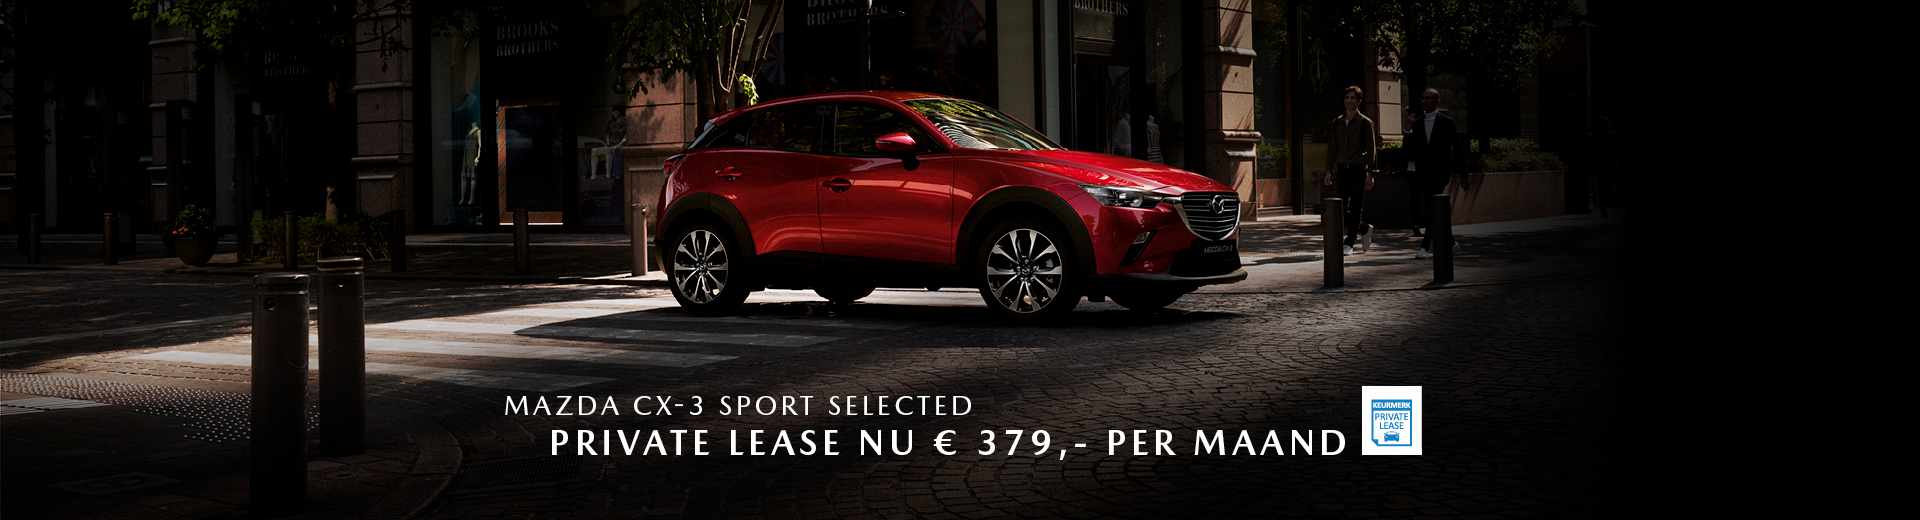 190139 Mazda Q2_Banner Mazda CX-3 Sport Selected_Private Lease_1920x520px [opmaak 01]